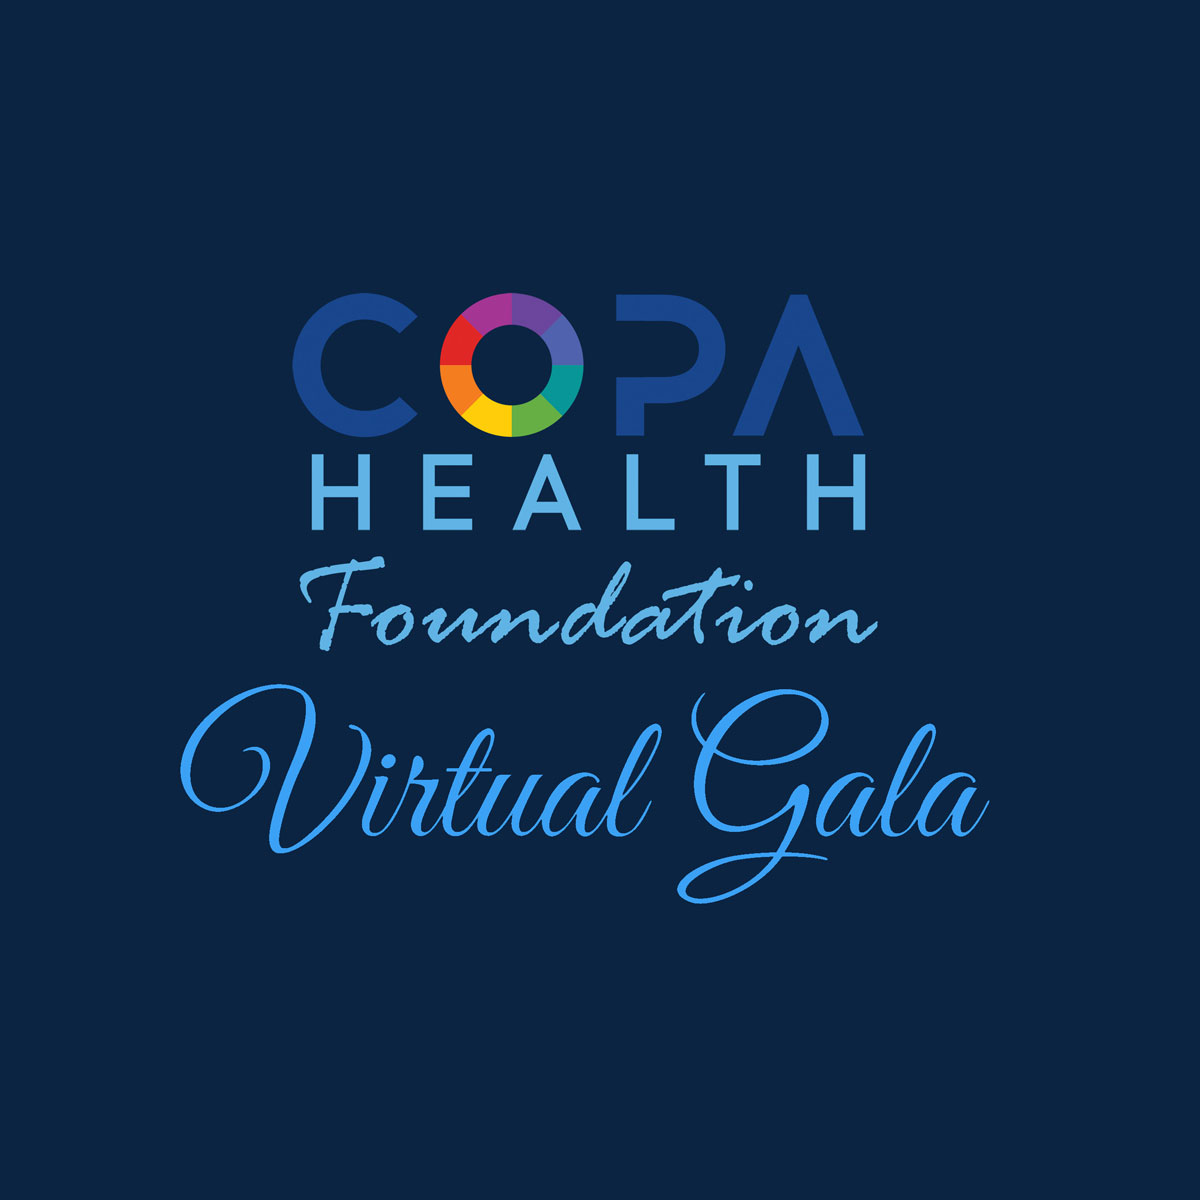 Copa Cares Virtual Gala - October 1, 2020 - 5:30pm PST